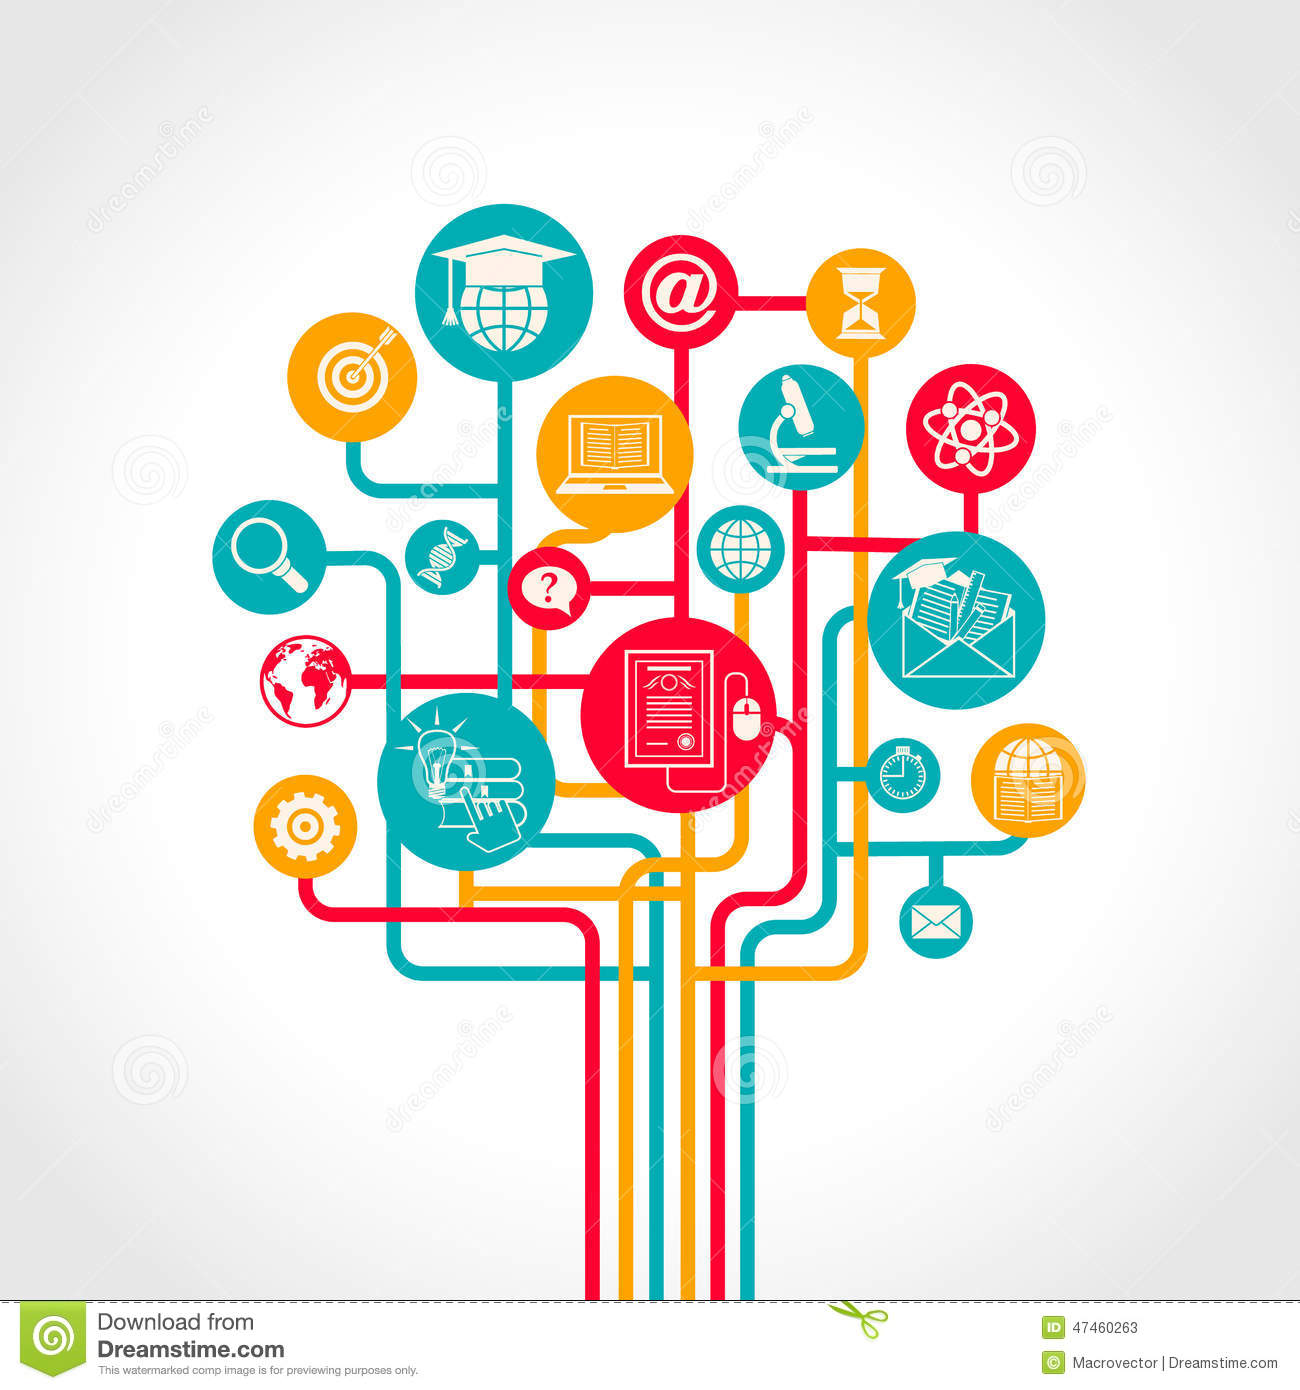 online education tree stock vector image 47460263 graduation 2018 cliparts in png format graduation 2018 cliparts in png format